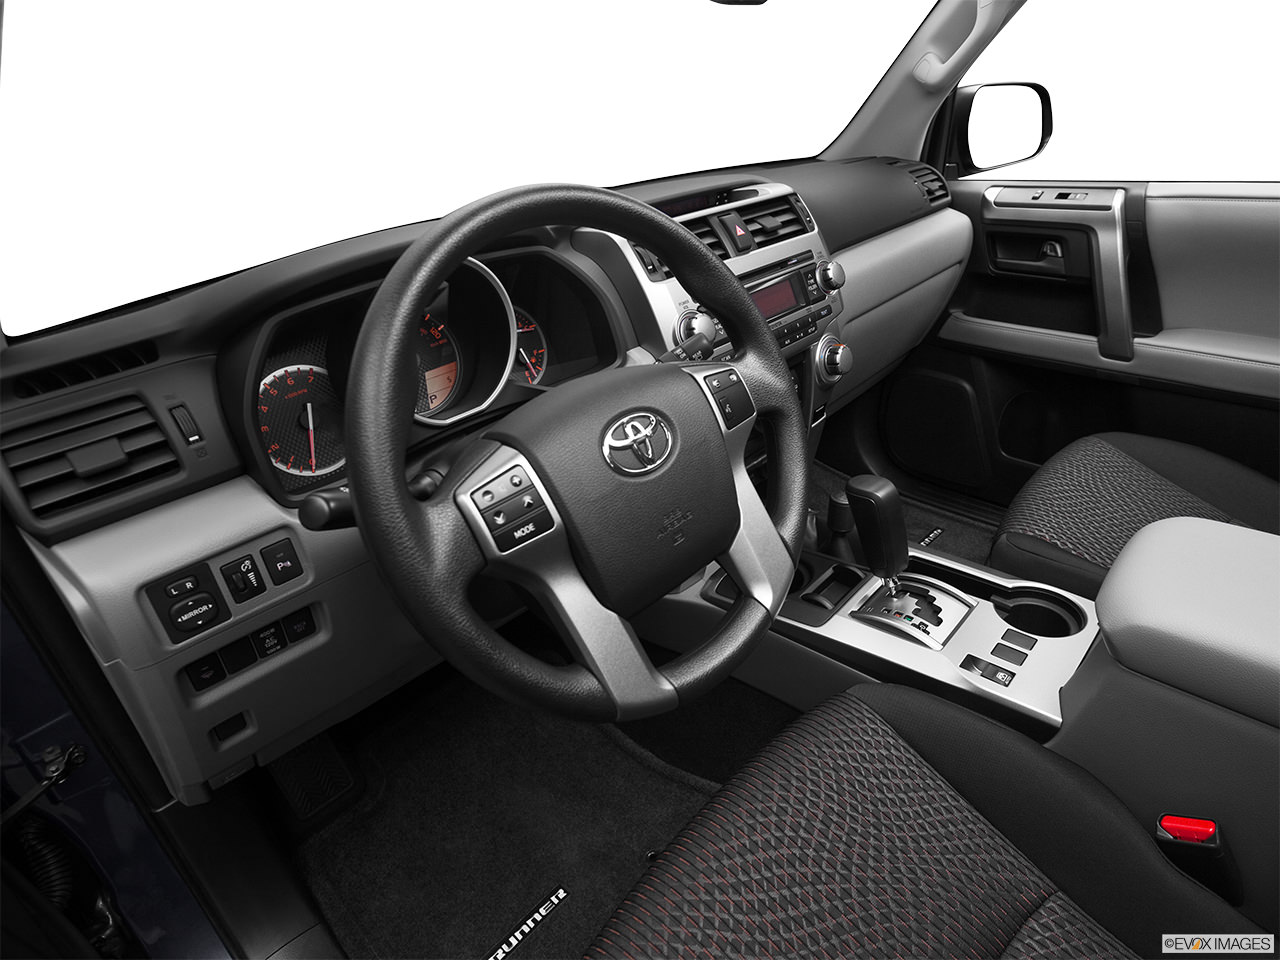 Toyota 4Runner 2012 Interior